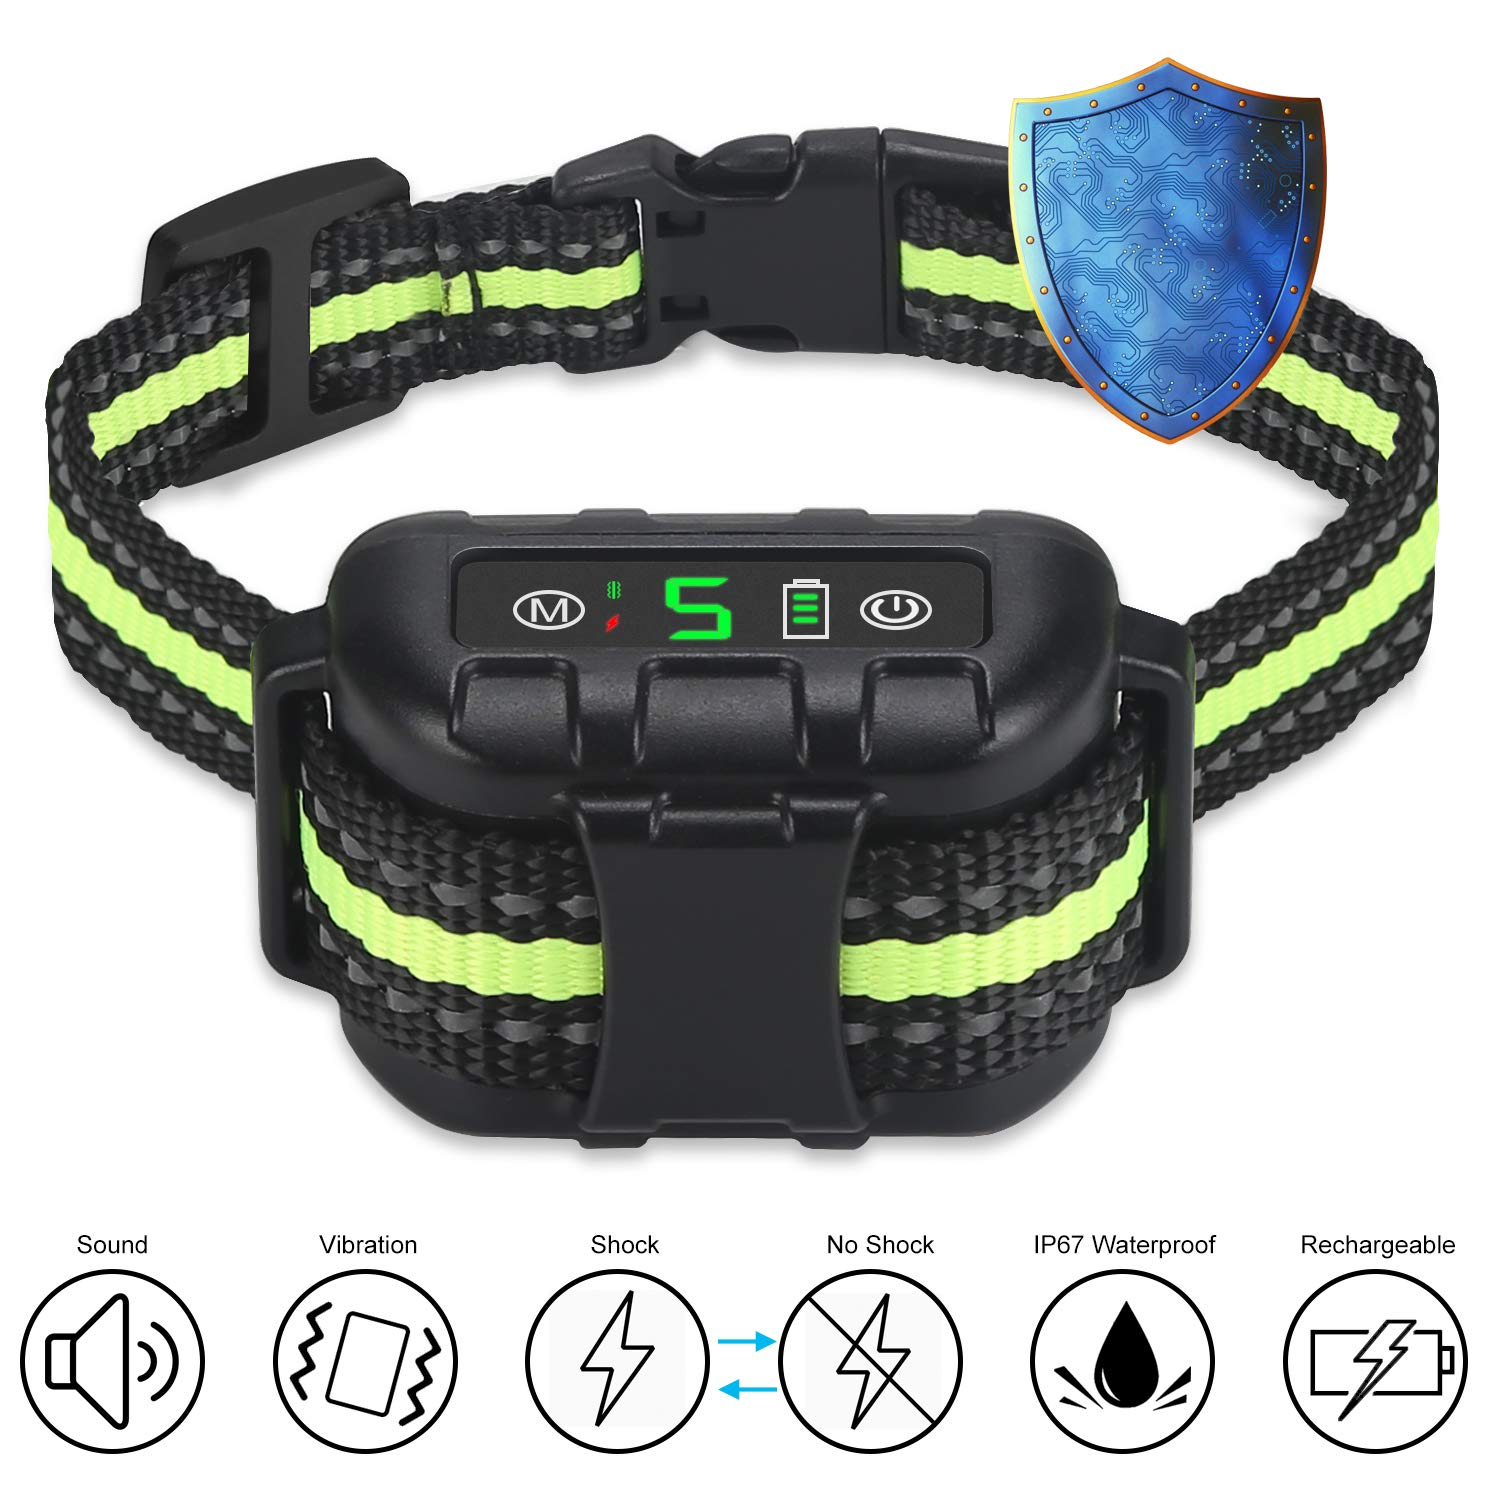 Nycetek Dog Bark Collar, Smart Triggering Dog Training Collar Bark Control Devices for 8lbs-120lbs Dogs, Rechargeable Anti Bark Collar with Adjustable Collar Size and 2 Training Modes Black Green